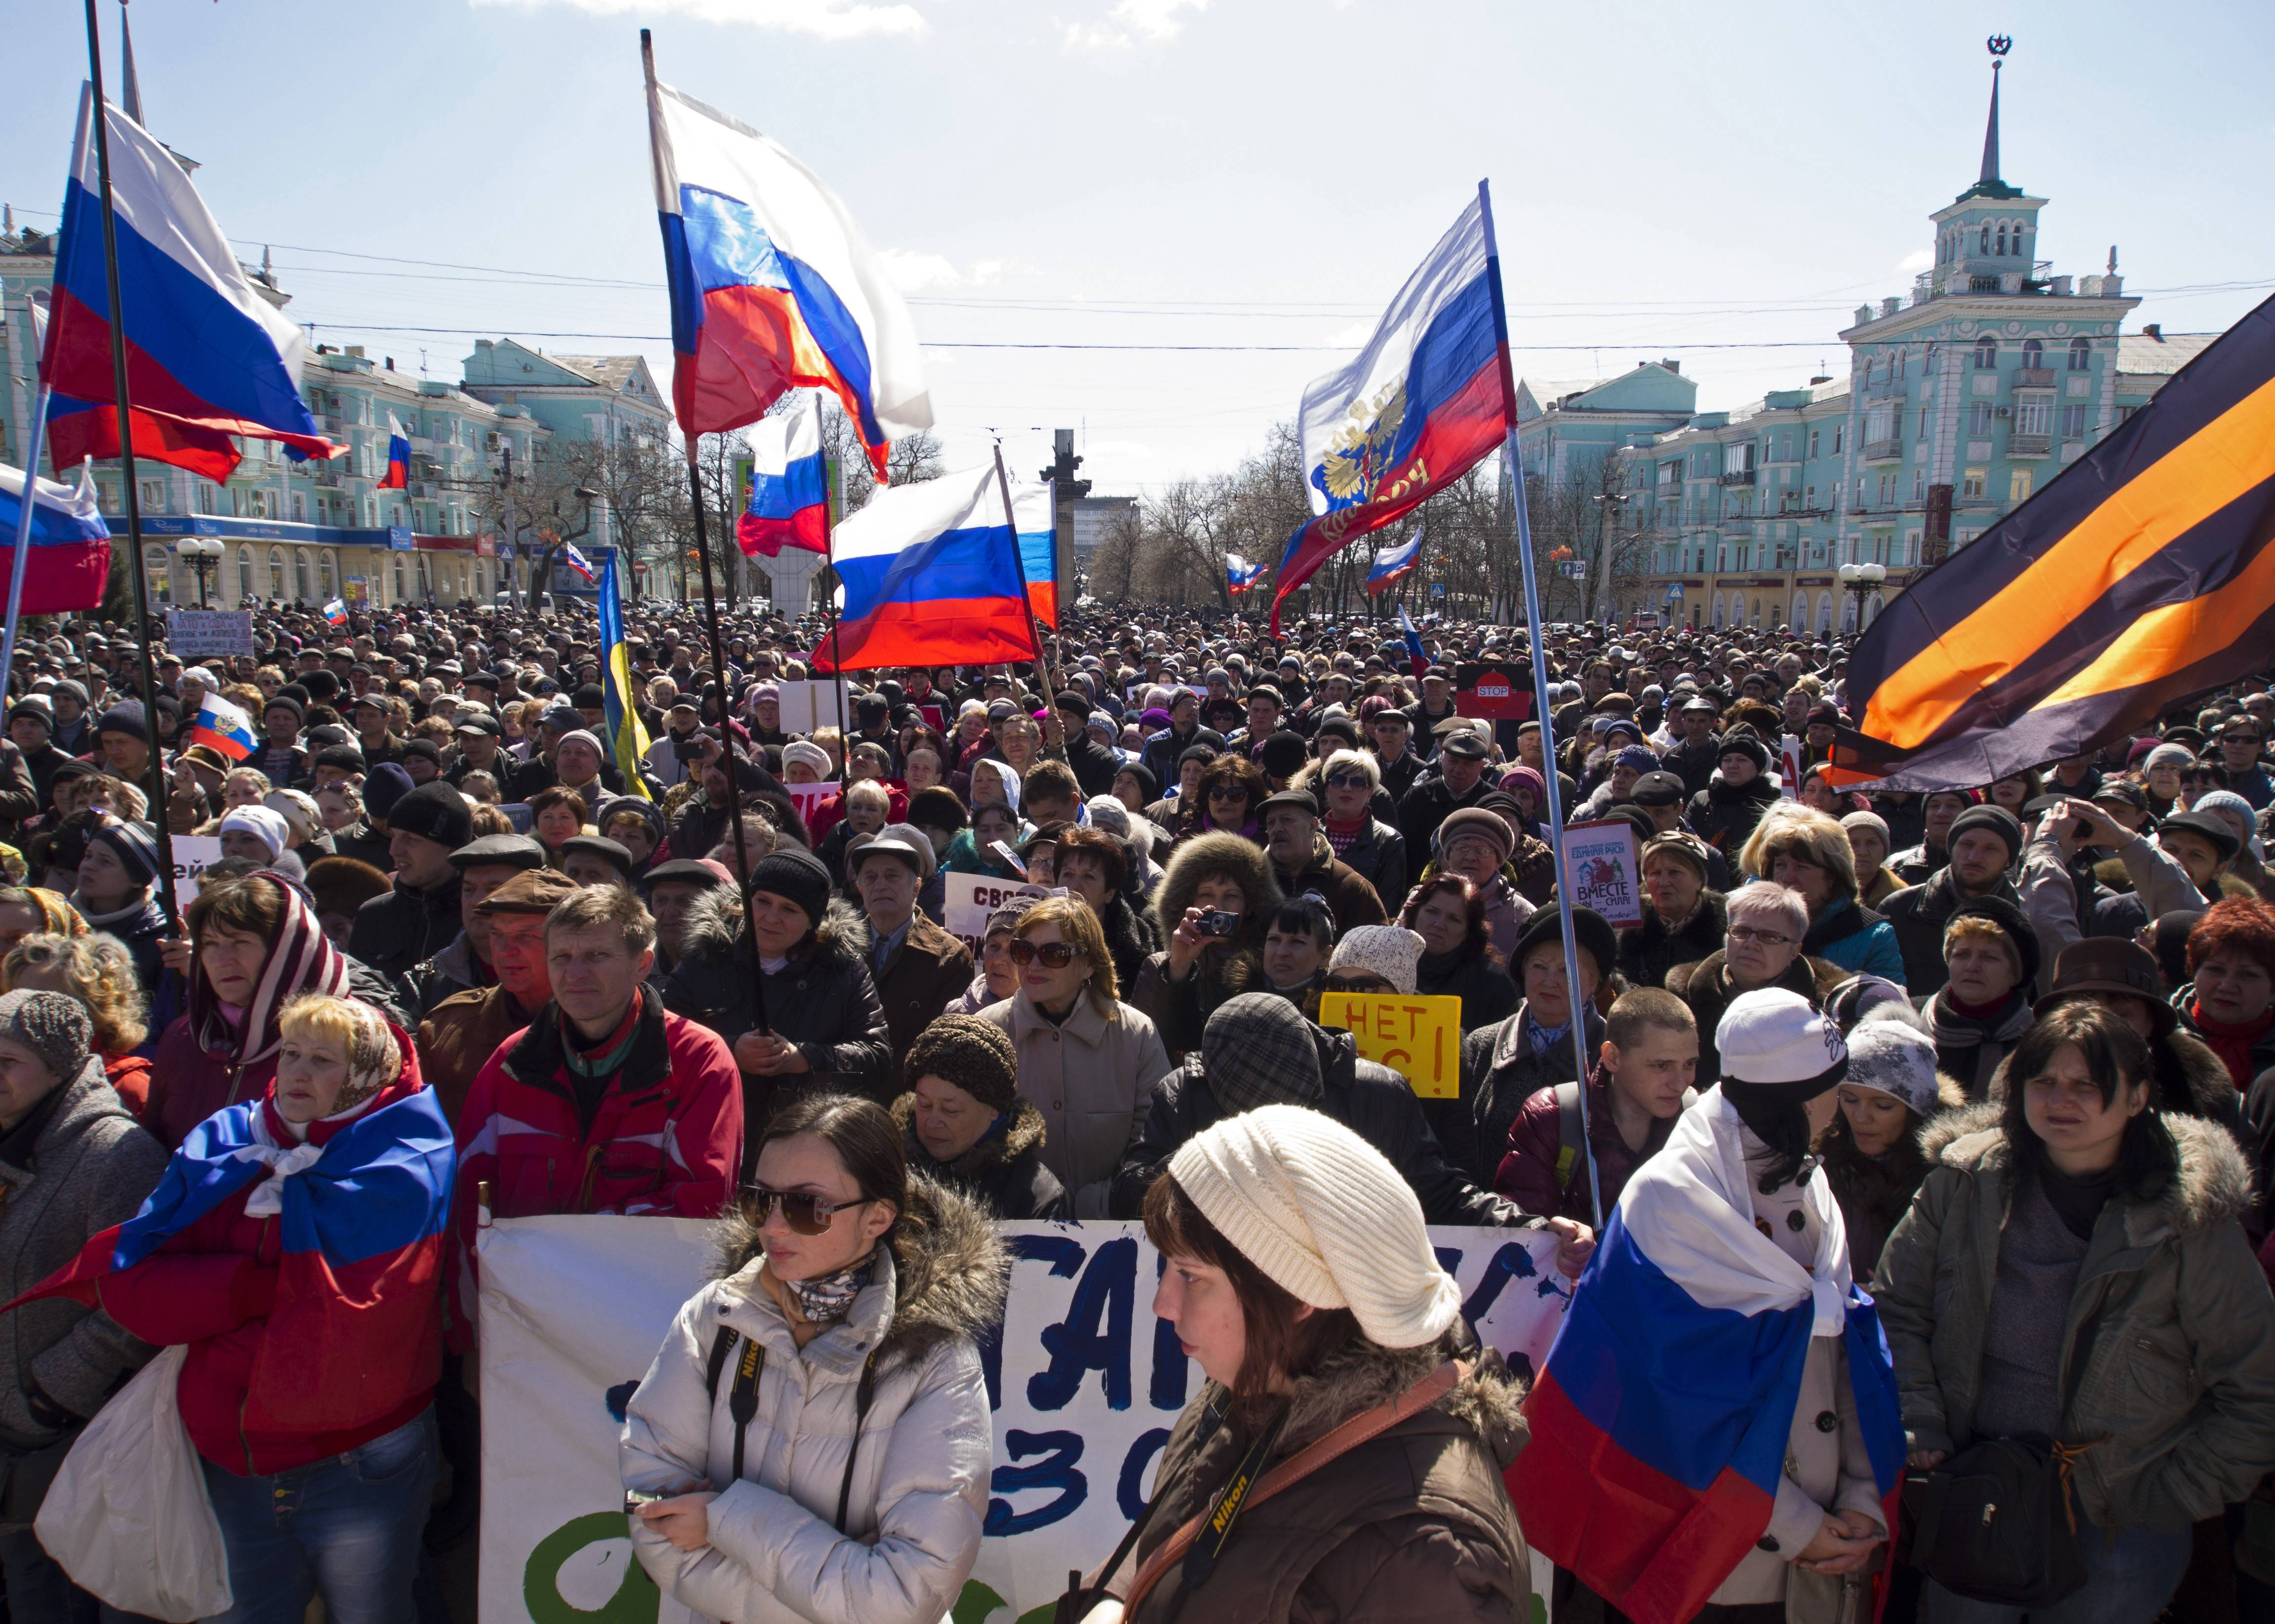 Pro-Russian demonstrators hold Russian national flags during an anti-government rally in Luhansk, Ukraine, Sunday. As Ukraine moves quickly to build up its governance, it still casts an uneasy eye toward Russia, fearing a possible troop invasion into eastern Ukraine.